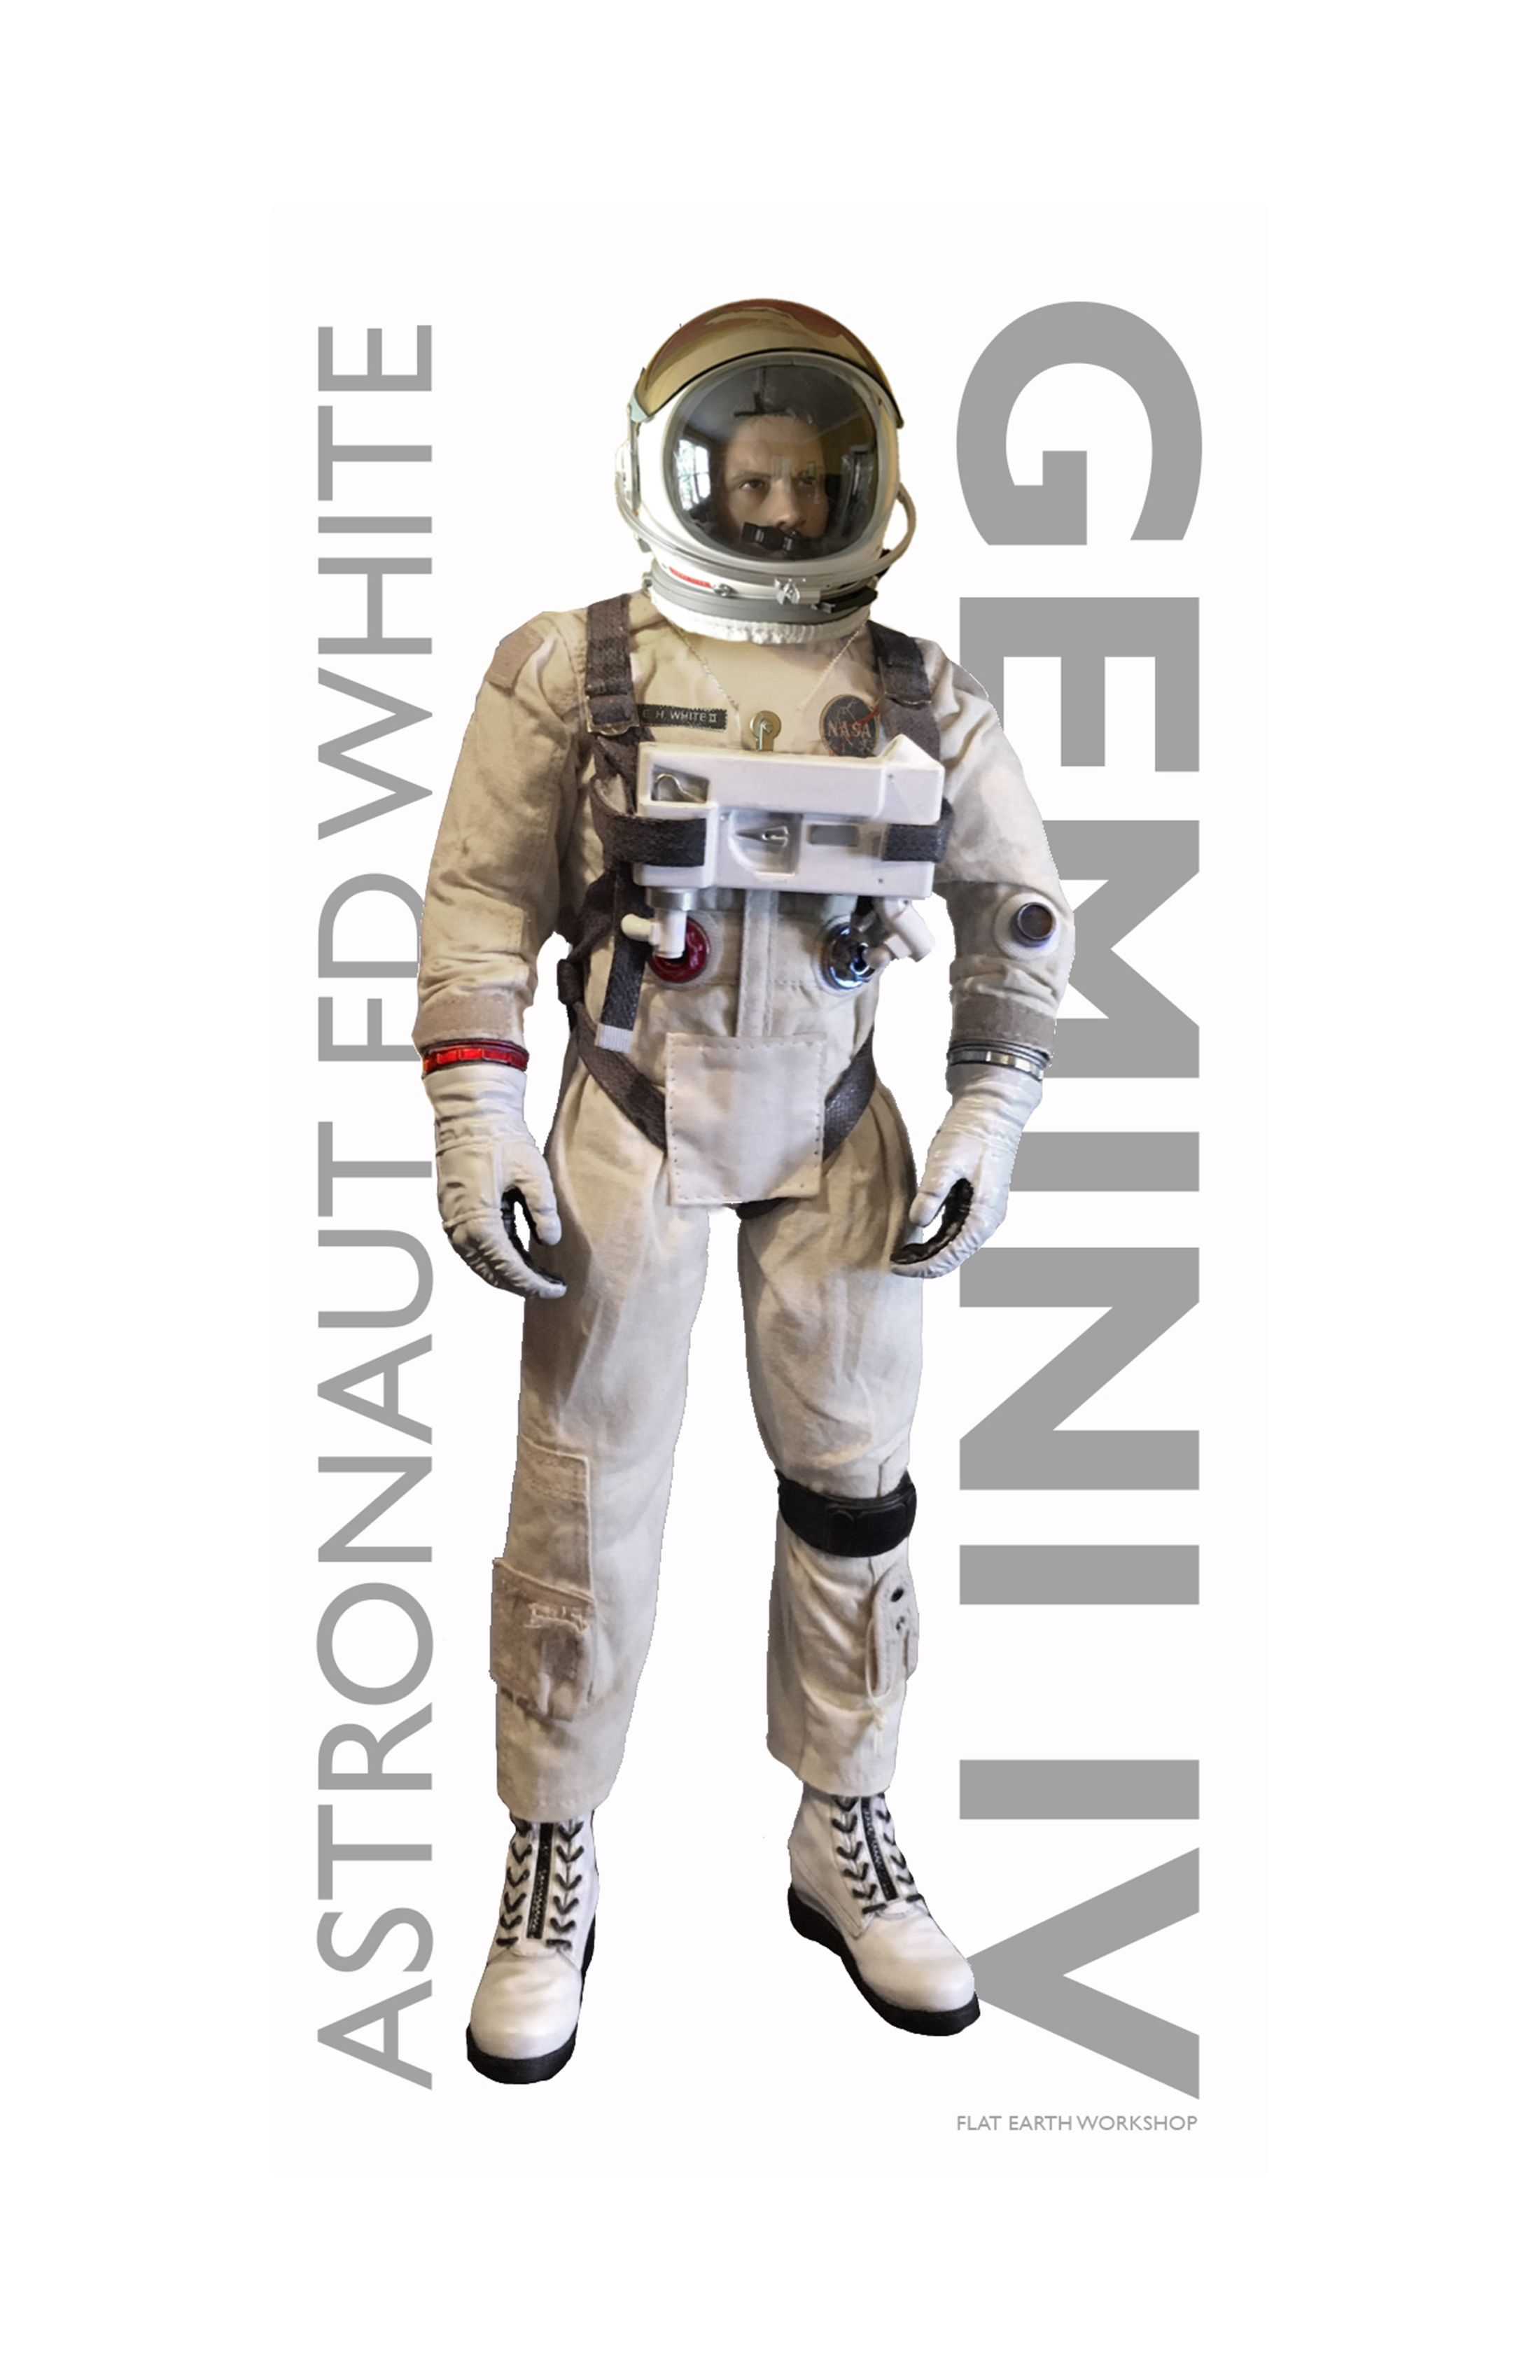 ed white 1 6 figure from gemini iv eva mission created by flat earth workshop now in the collection of adam savage myth busters tested  [ 2200 x 3400 Pixel ]